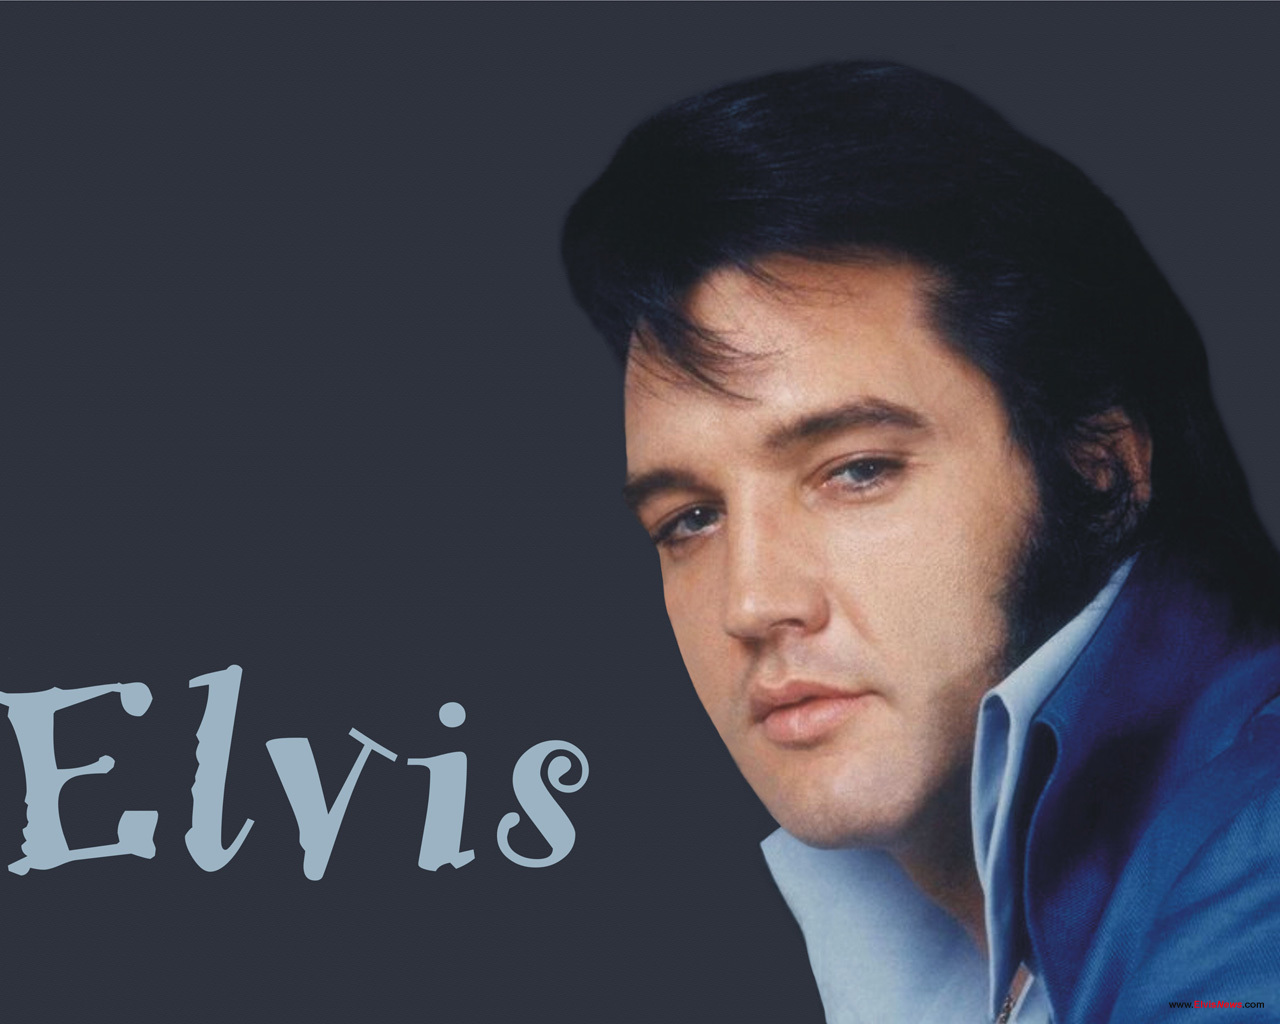 Elvis Presley - Elvis Sails - The Press Interviews